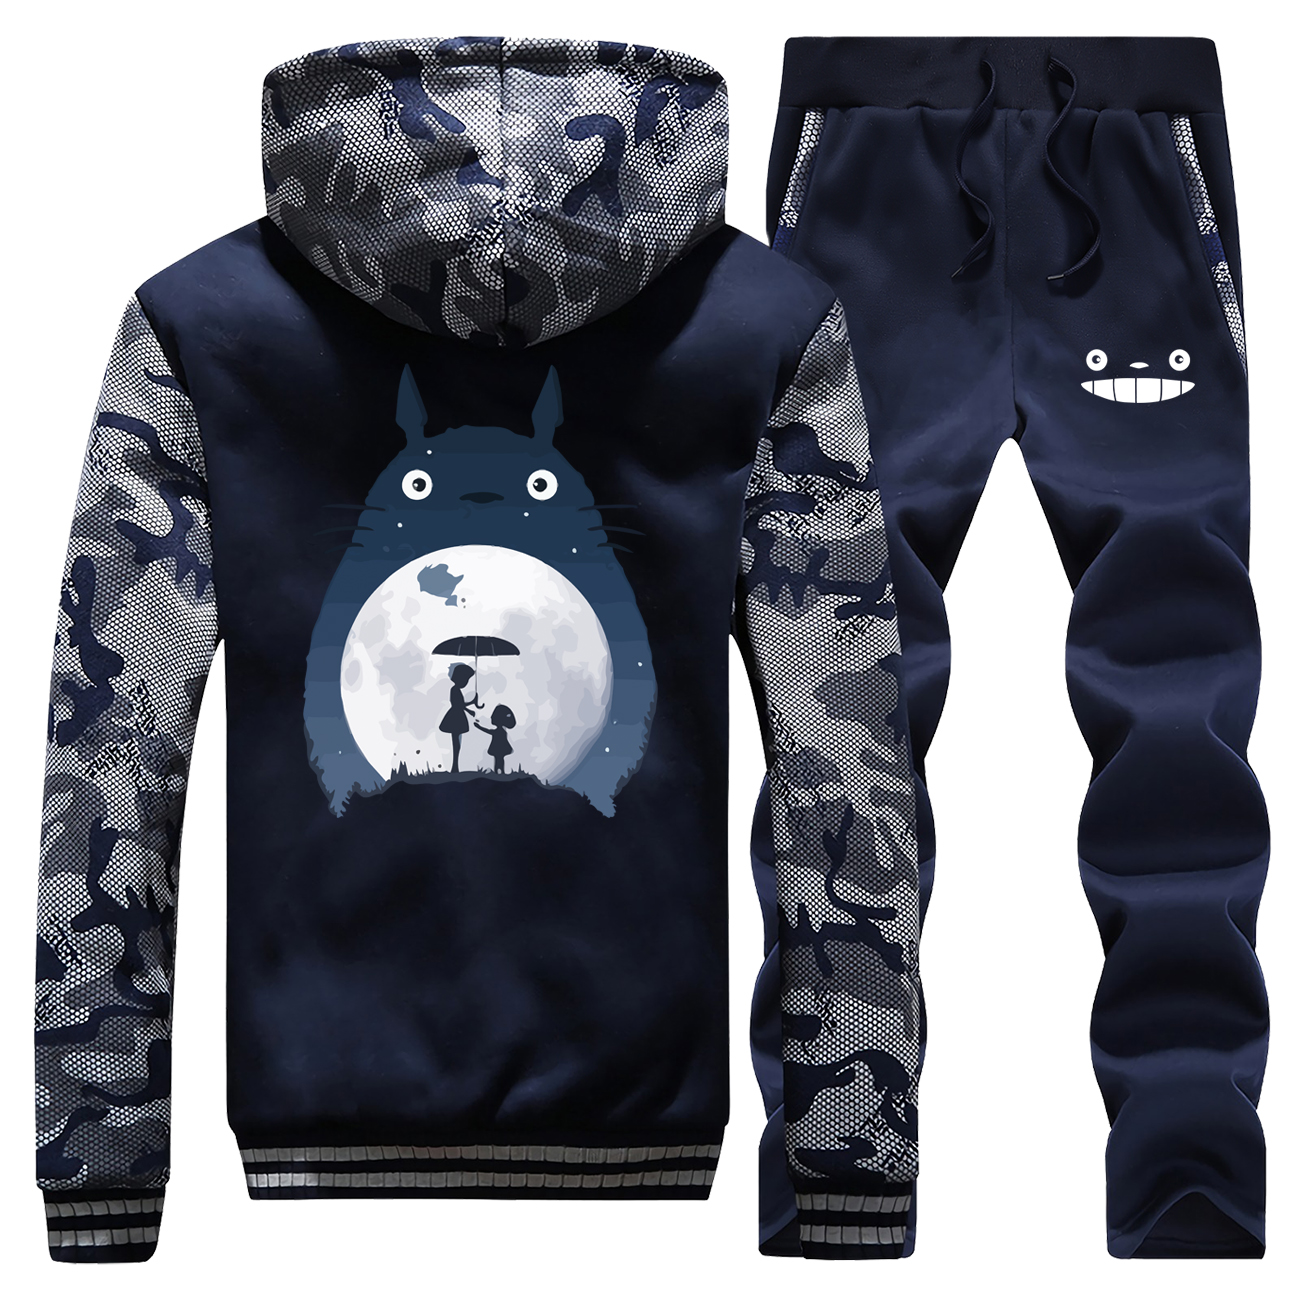 Tonari No Totoro Men Thick Hoodies Sweatshirt+Pants 2 Piece Sets Warm Suit Vintage Japanese Anime Jacket Mens Winter Tracksuit